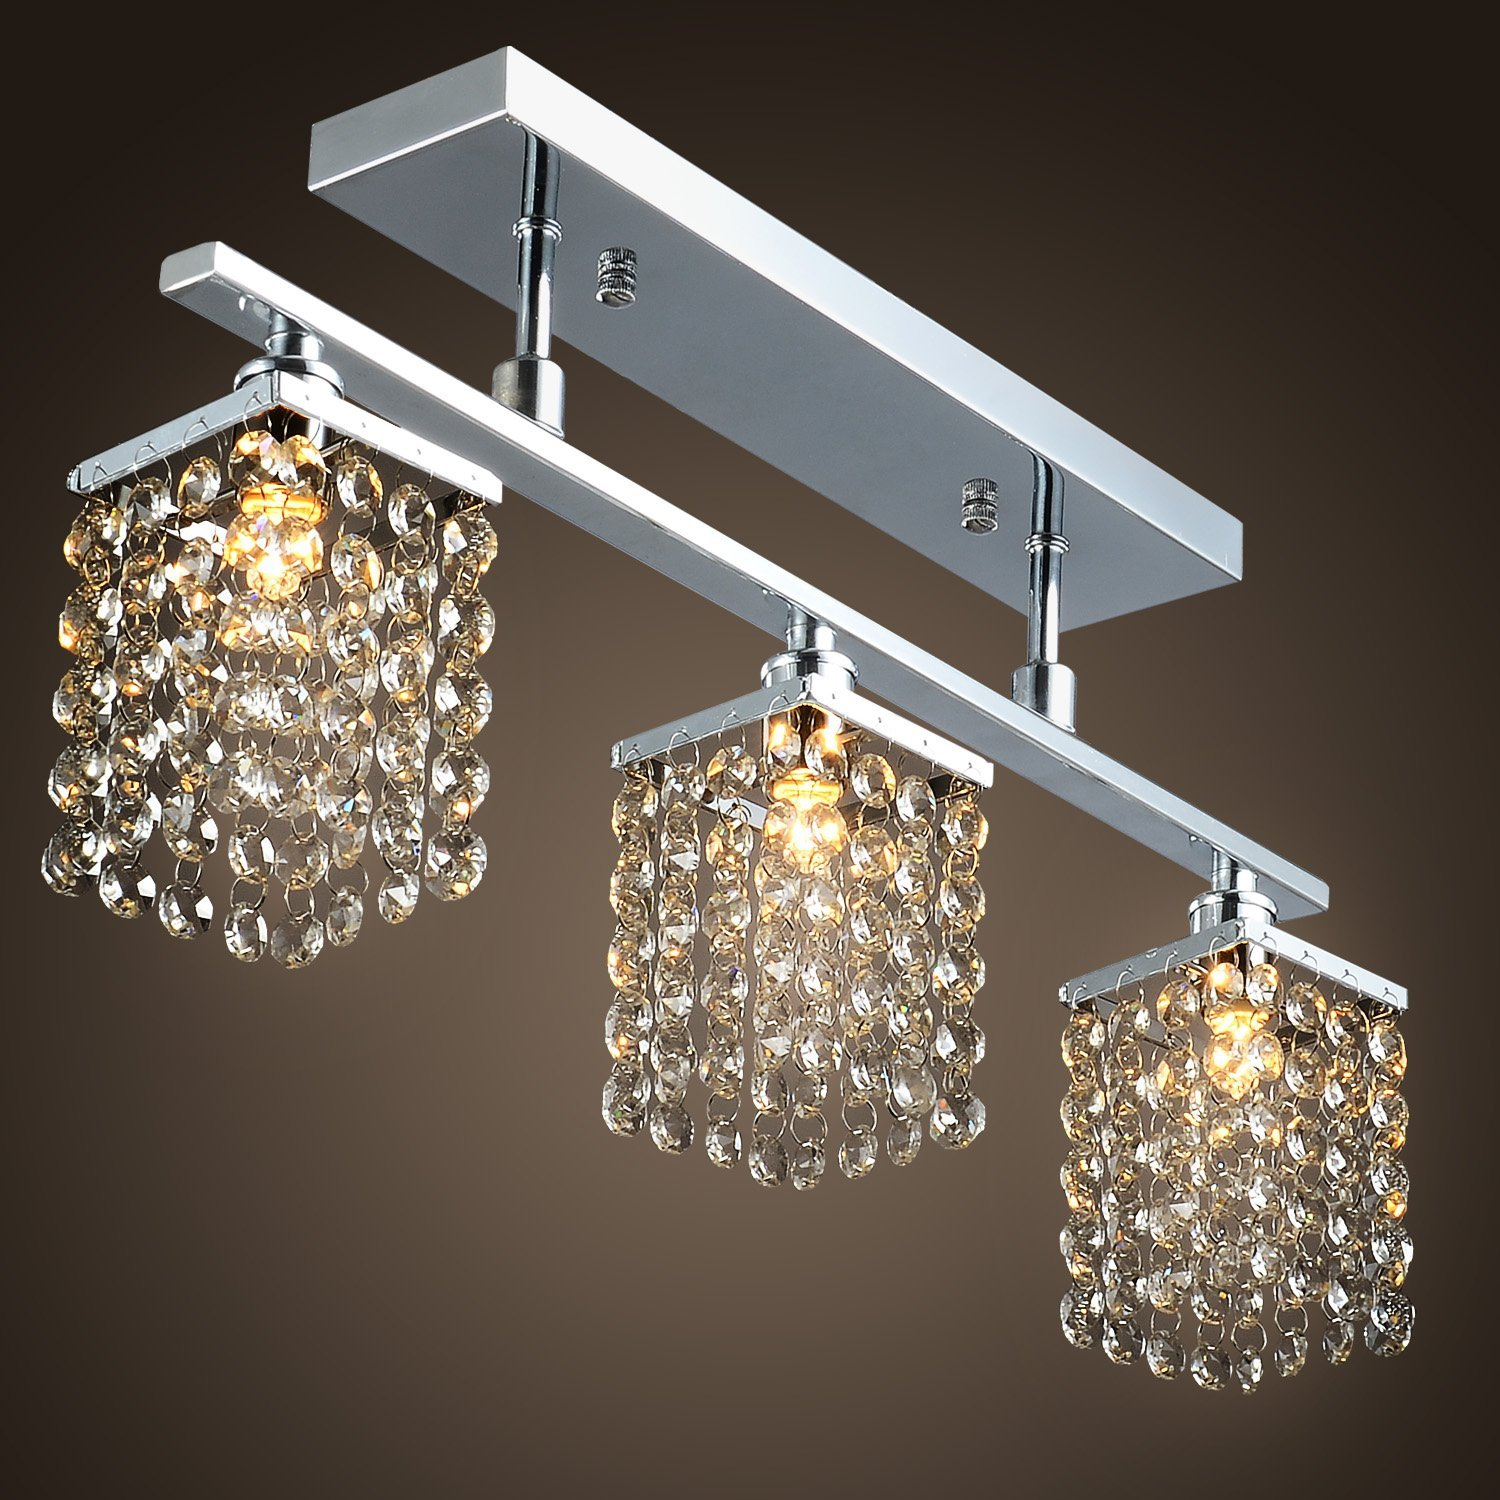 3 Light Hanging Crystal Linear Chandelier With Fixture Modern Flush Mount Ceiling For